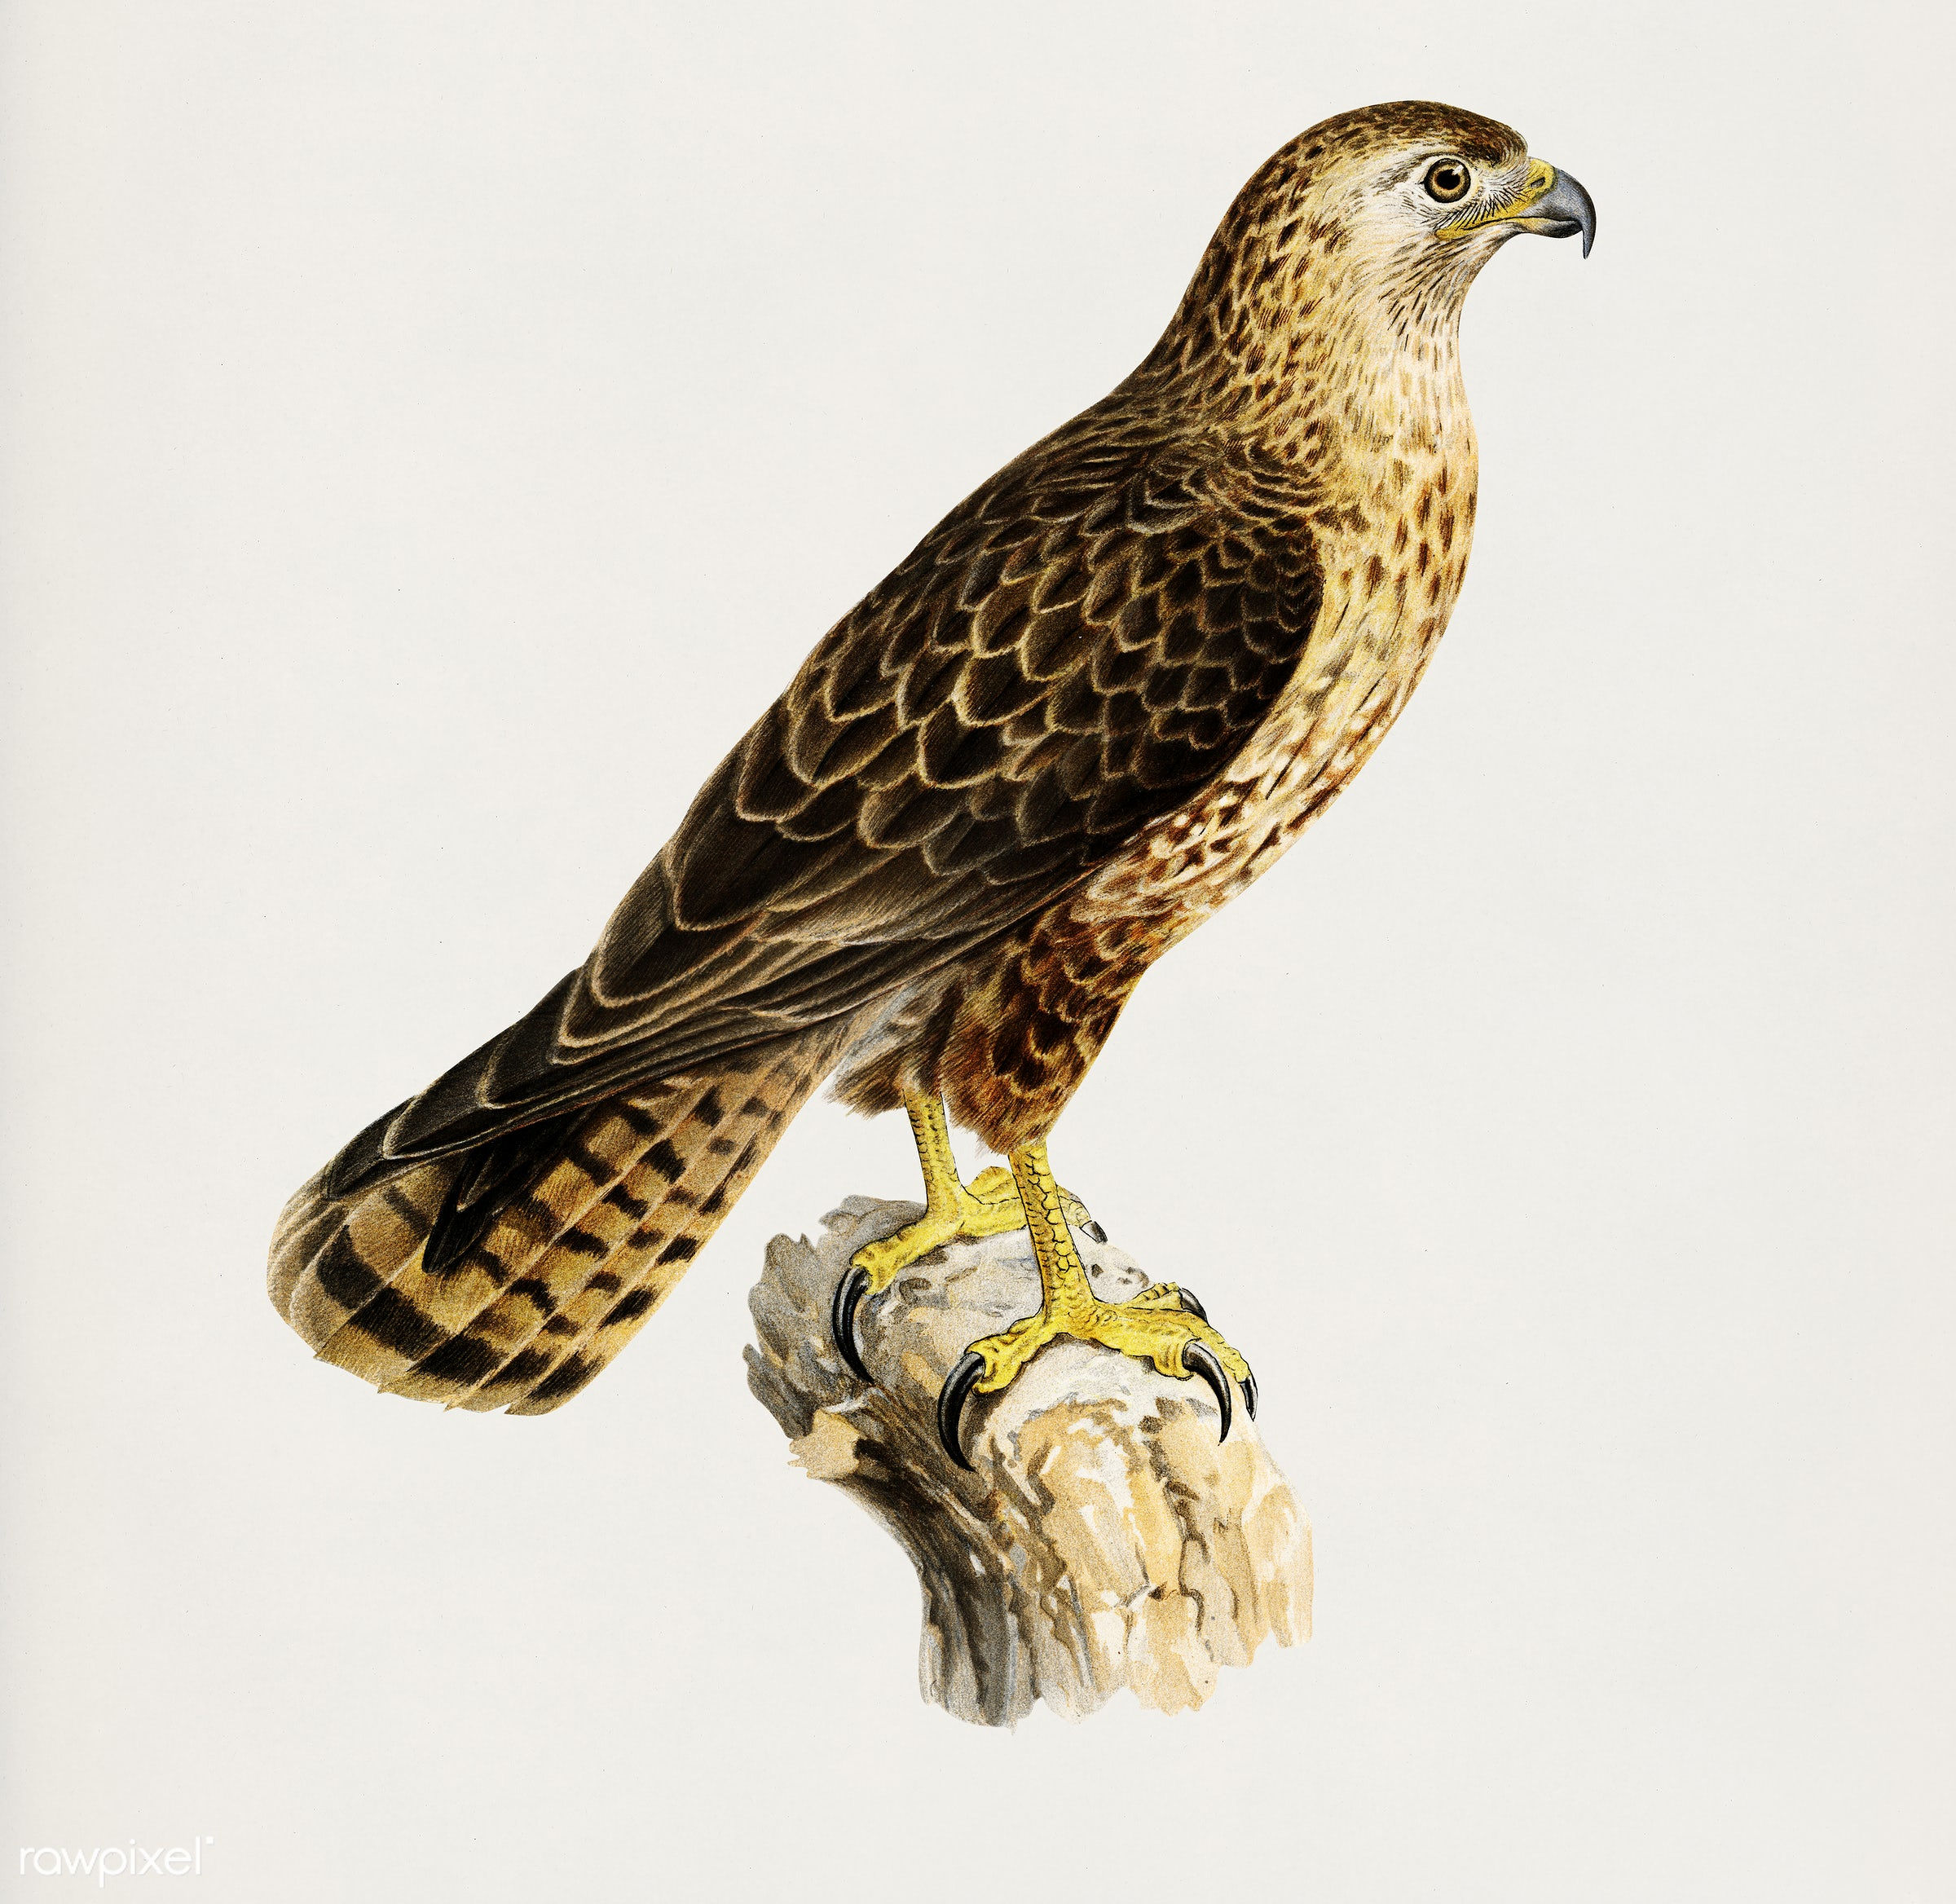 Common Buzzard (Buteo buteo intermedius) illustrated by the von Wright brothers. Digitally enhanced from our own 1929 folio...